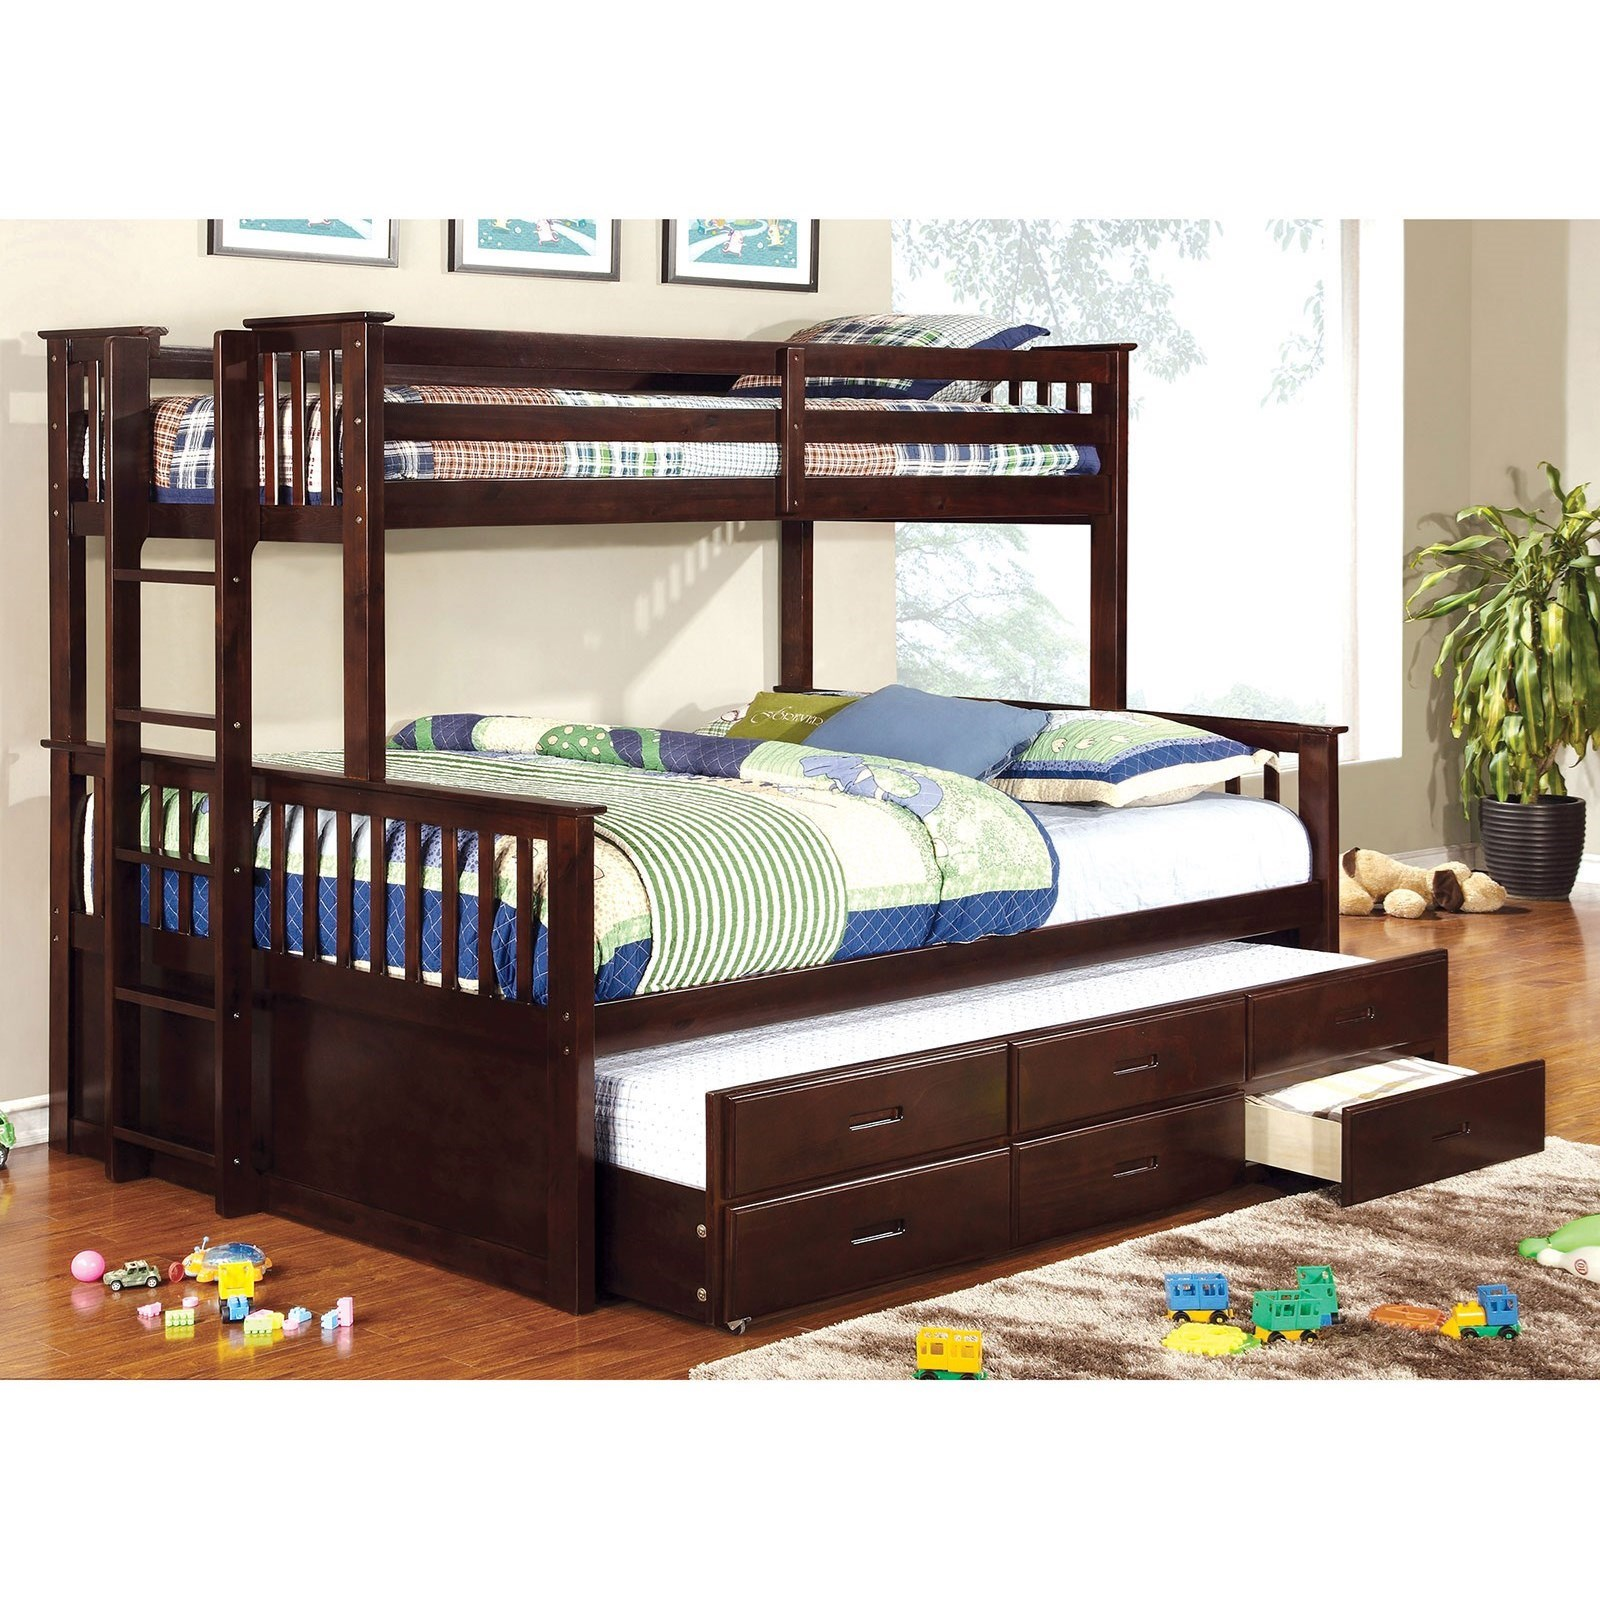 University Twin-over-Queen Bunk Bed and Trundle by Furniture of America at Nassau Furniture and Mattress